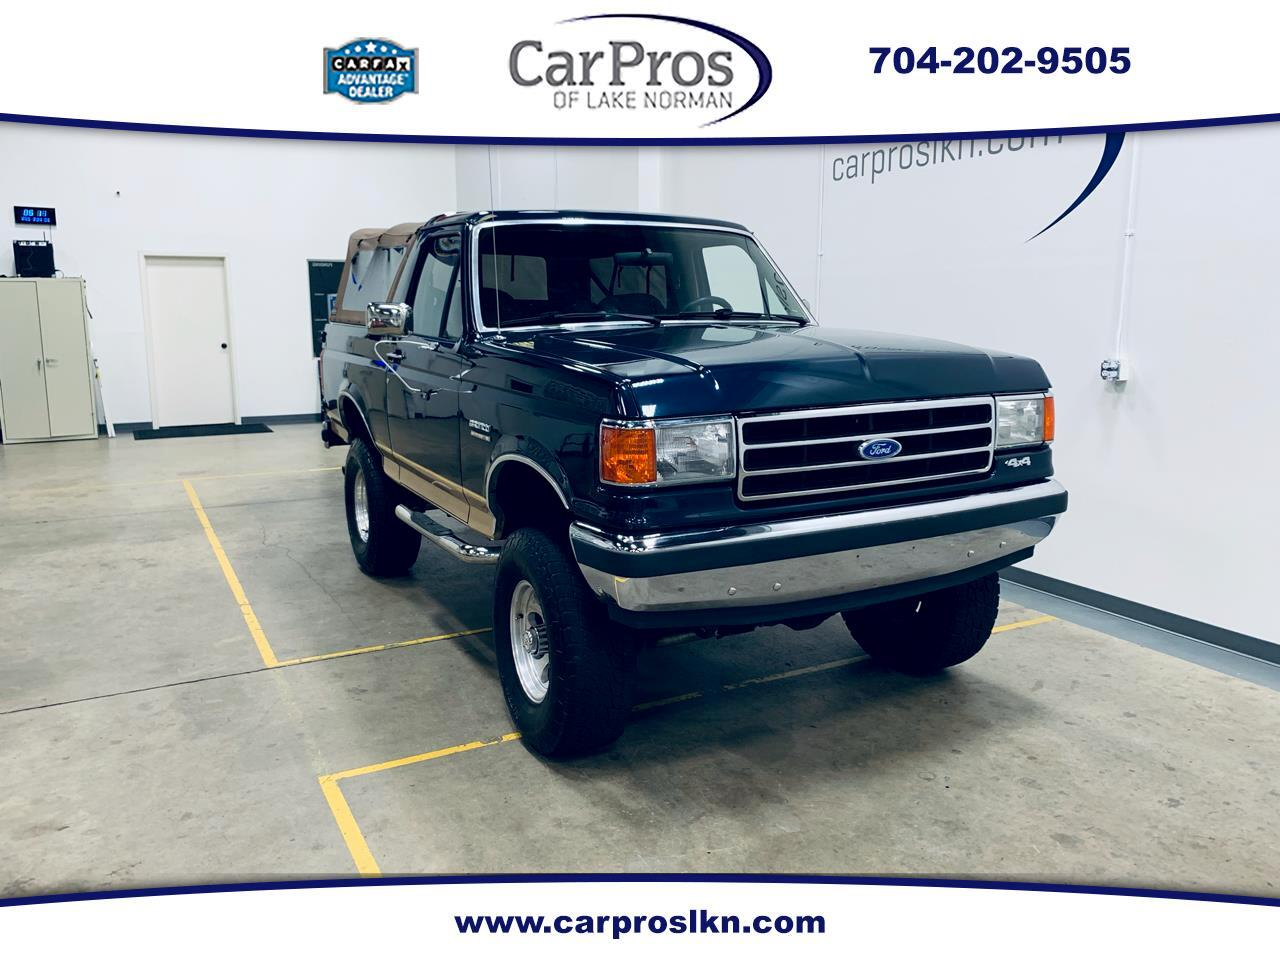 1989 Ford Bronco 2dr Wagon